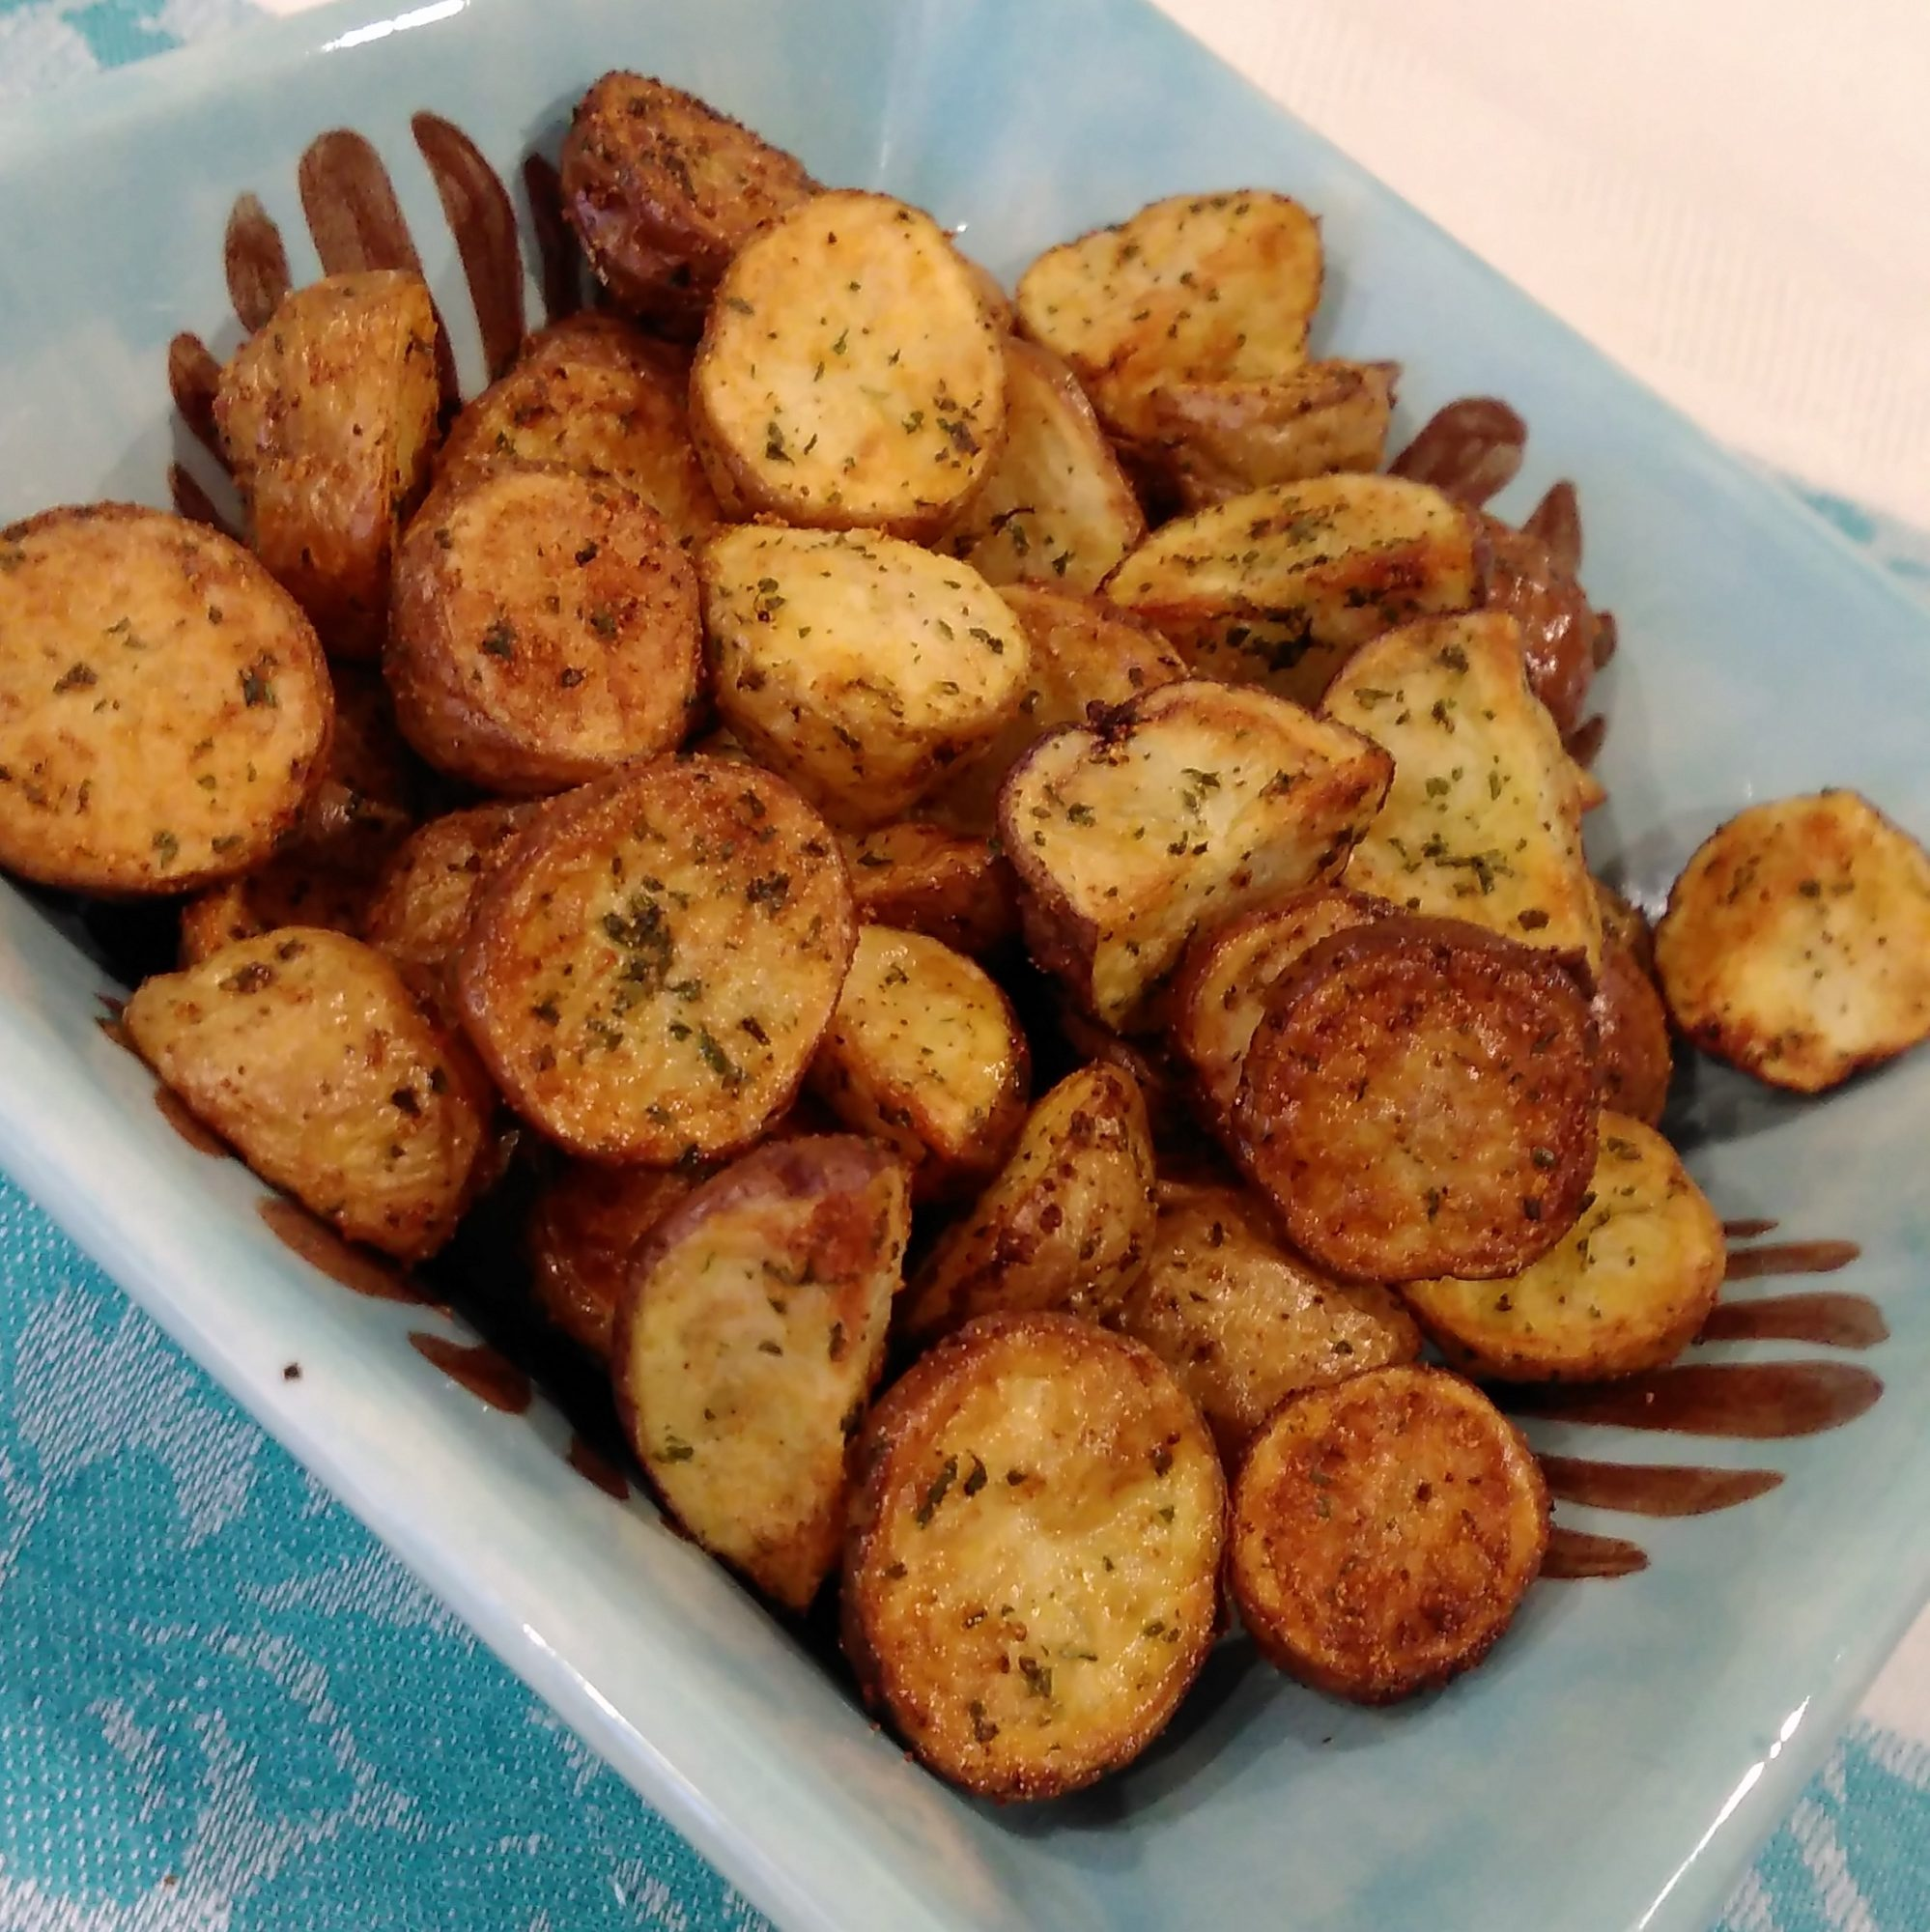 baby potatoes in a blue dish